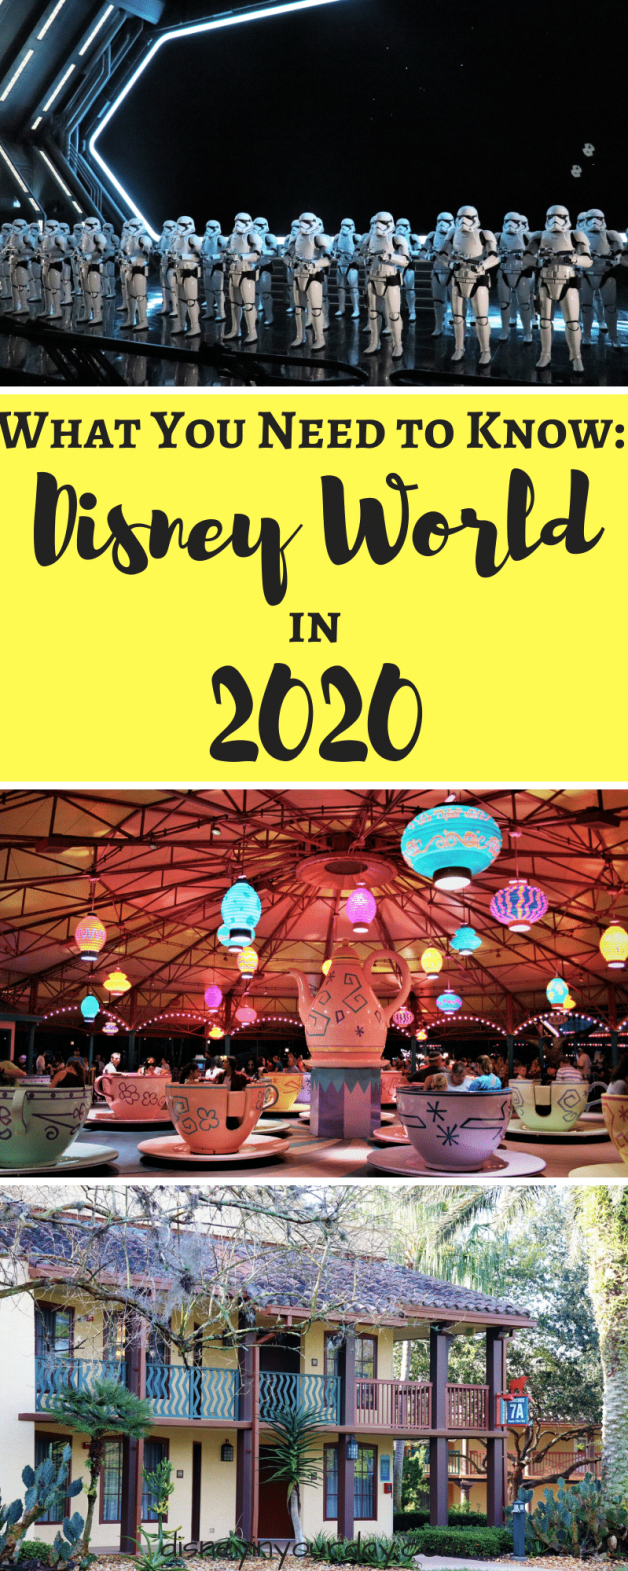 2020 Disney World - Disney in your Day